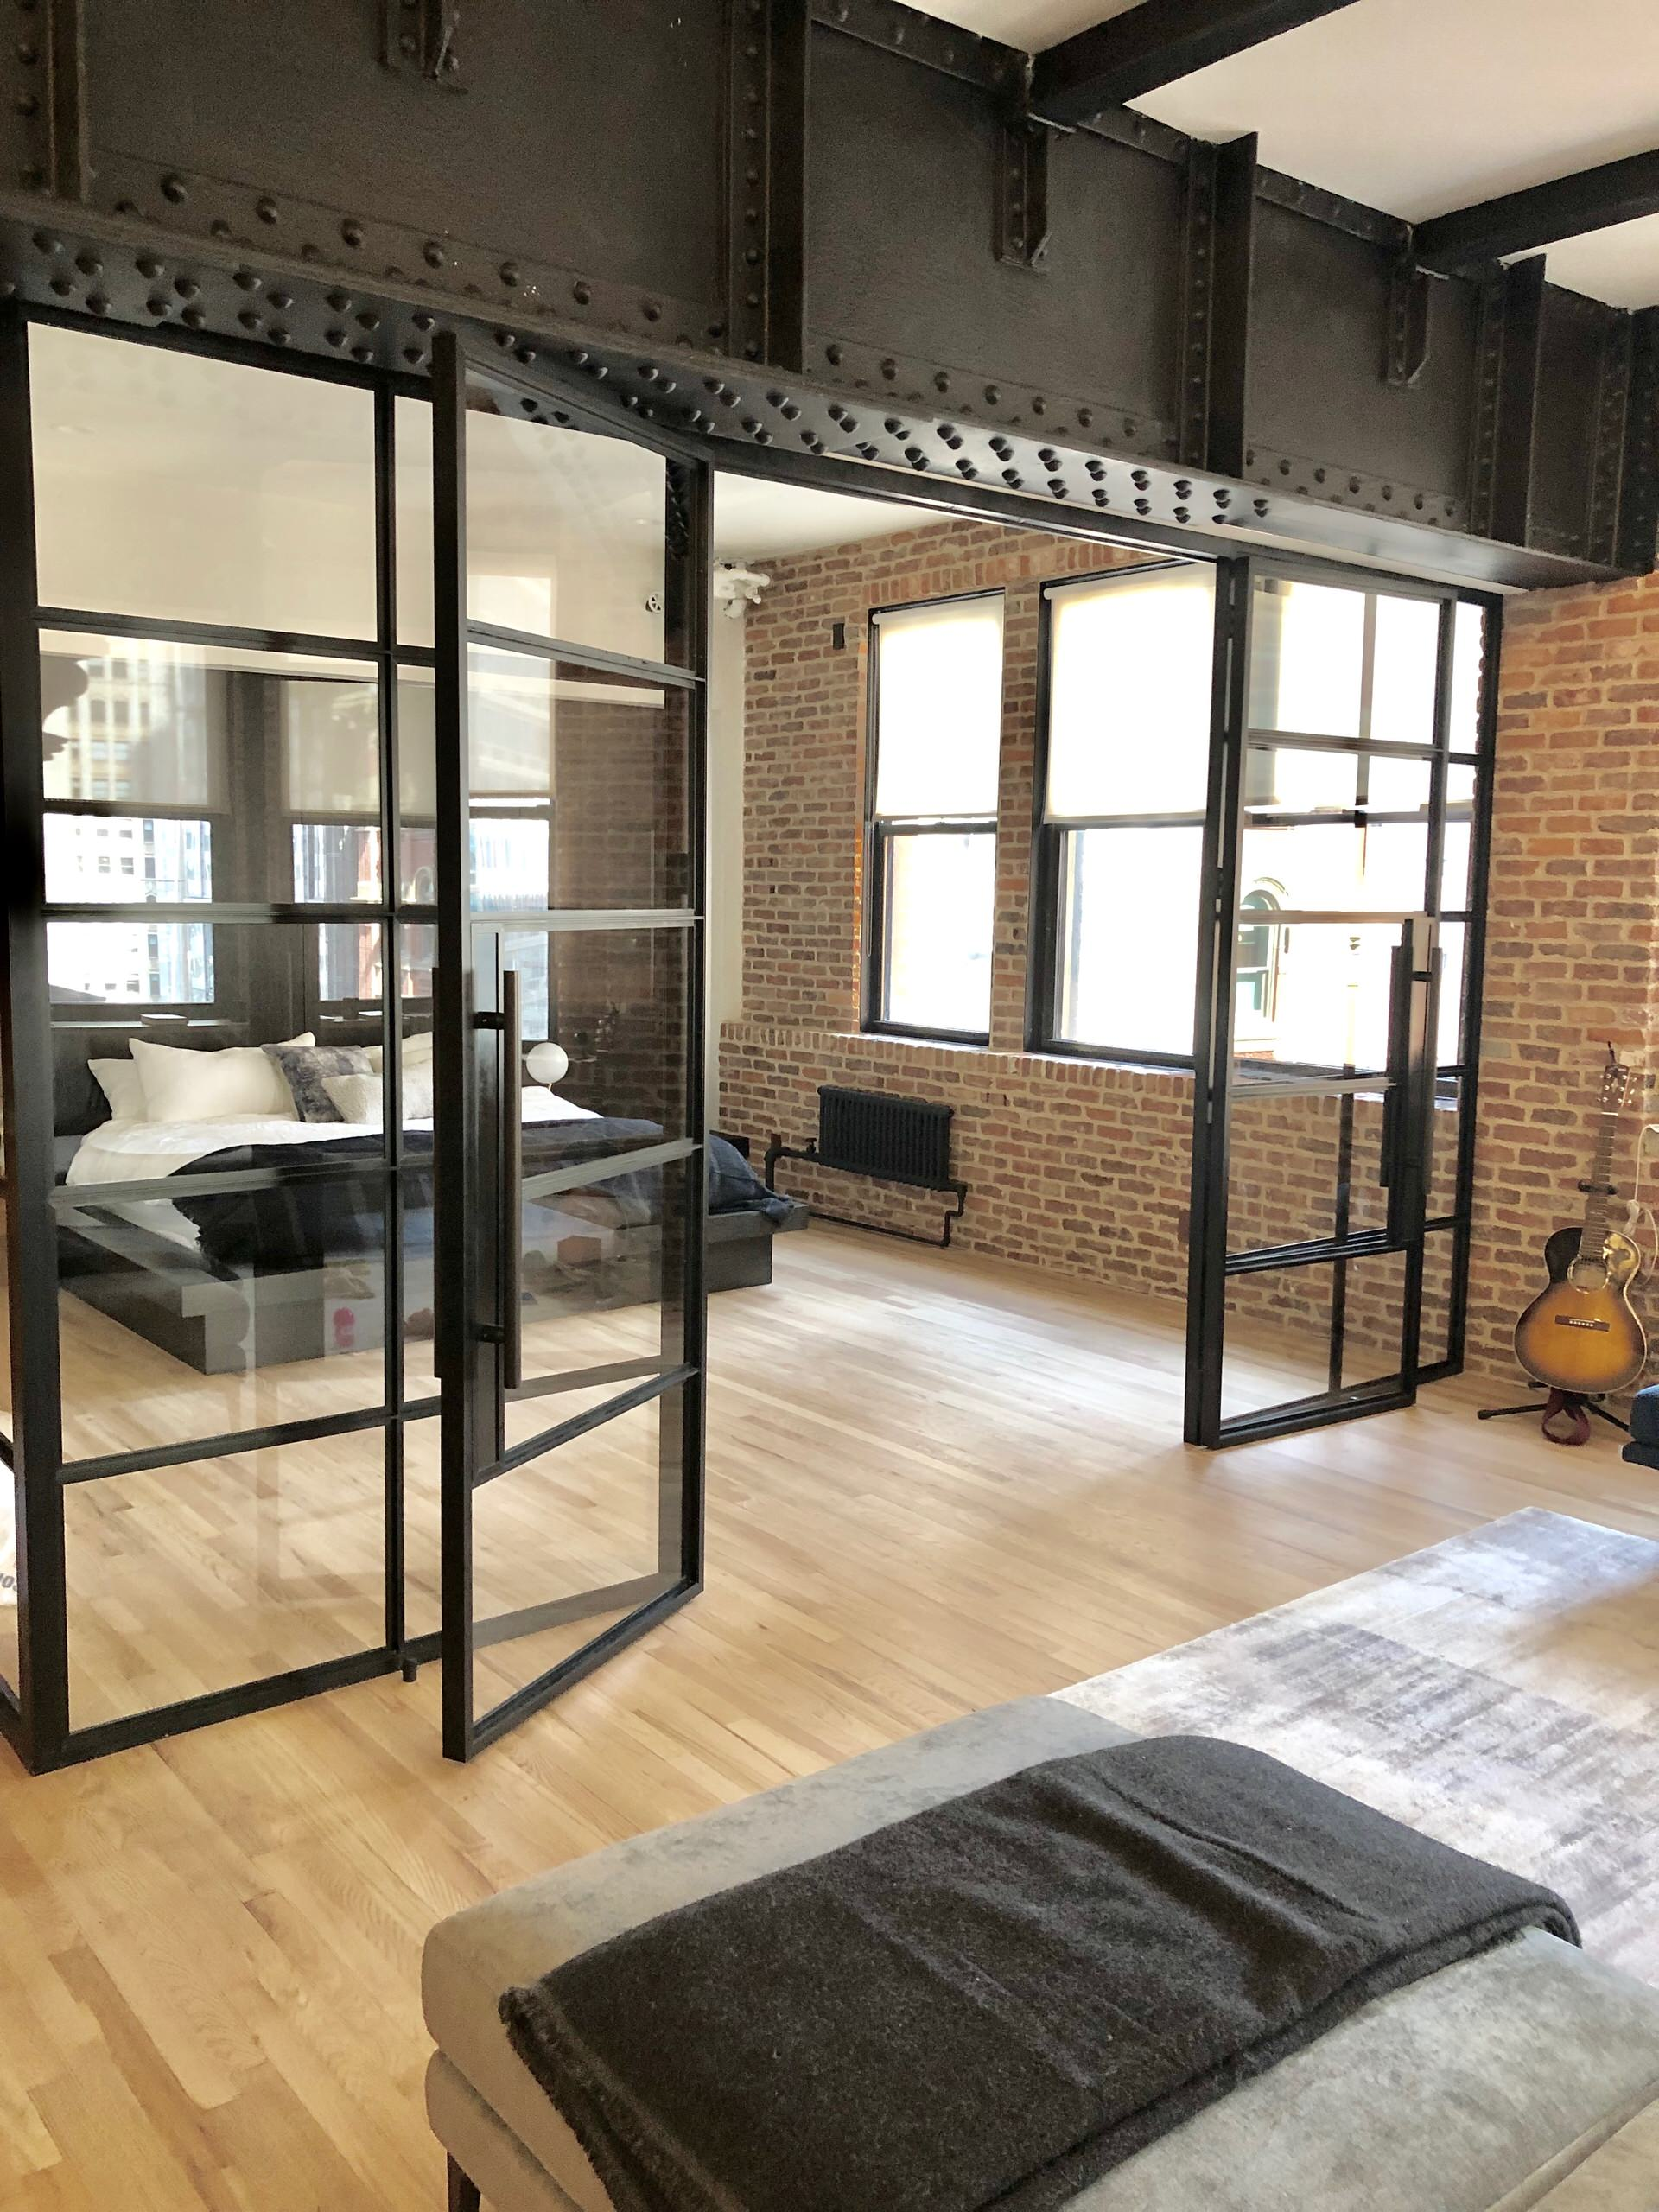 8 Beautiful Loft-Style Bedroom Pictures & Ideas - January, 8